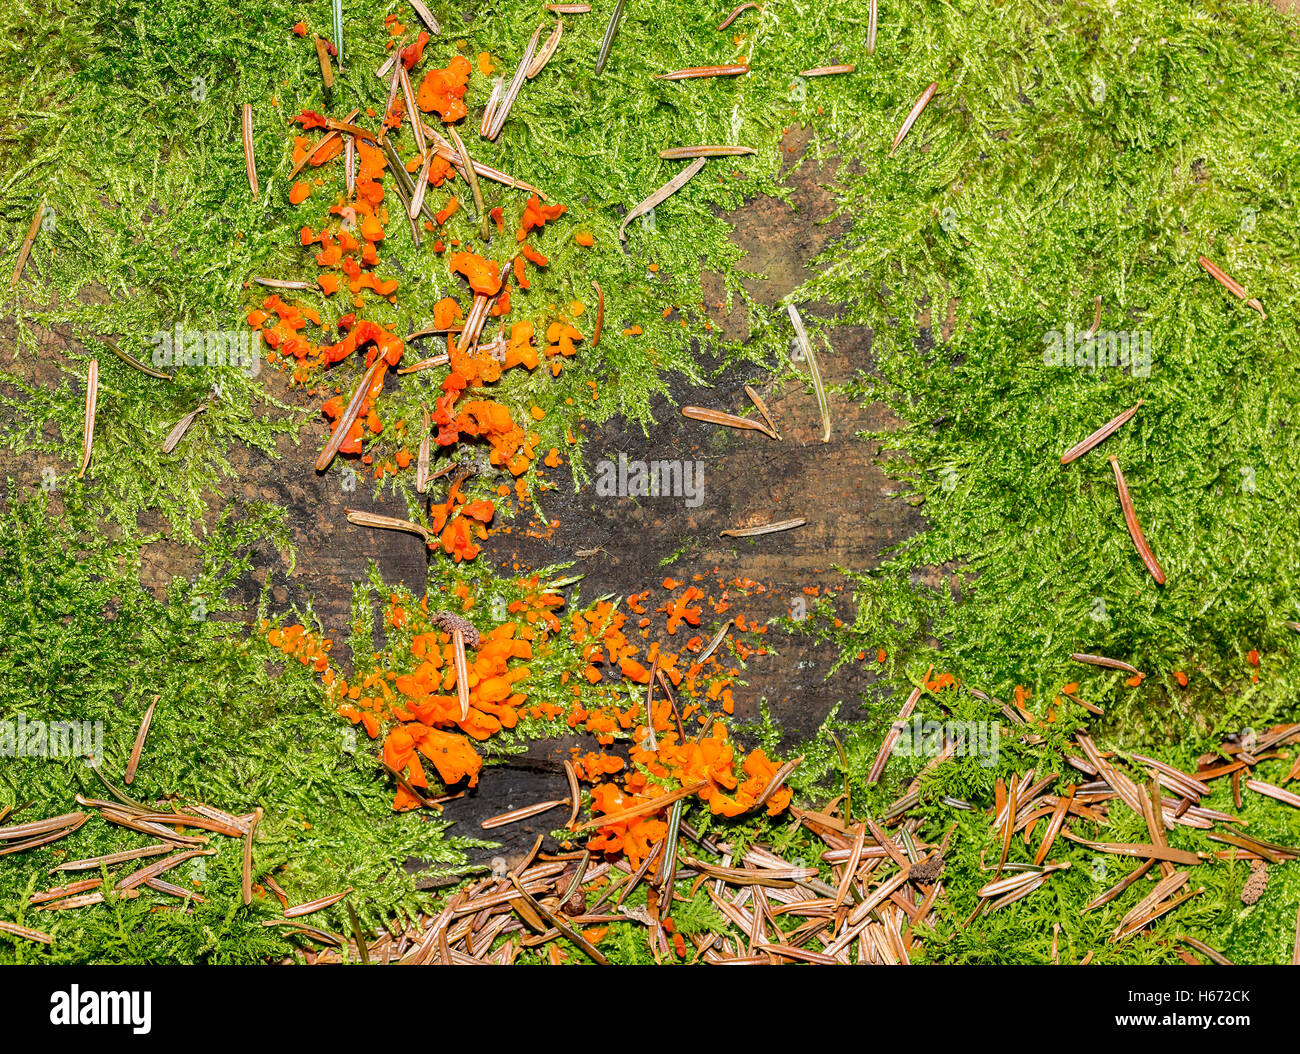 Group of Tremella aurantia growing on a tree stump. - Stock Image